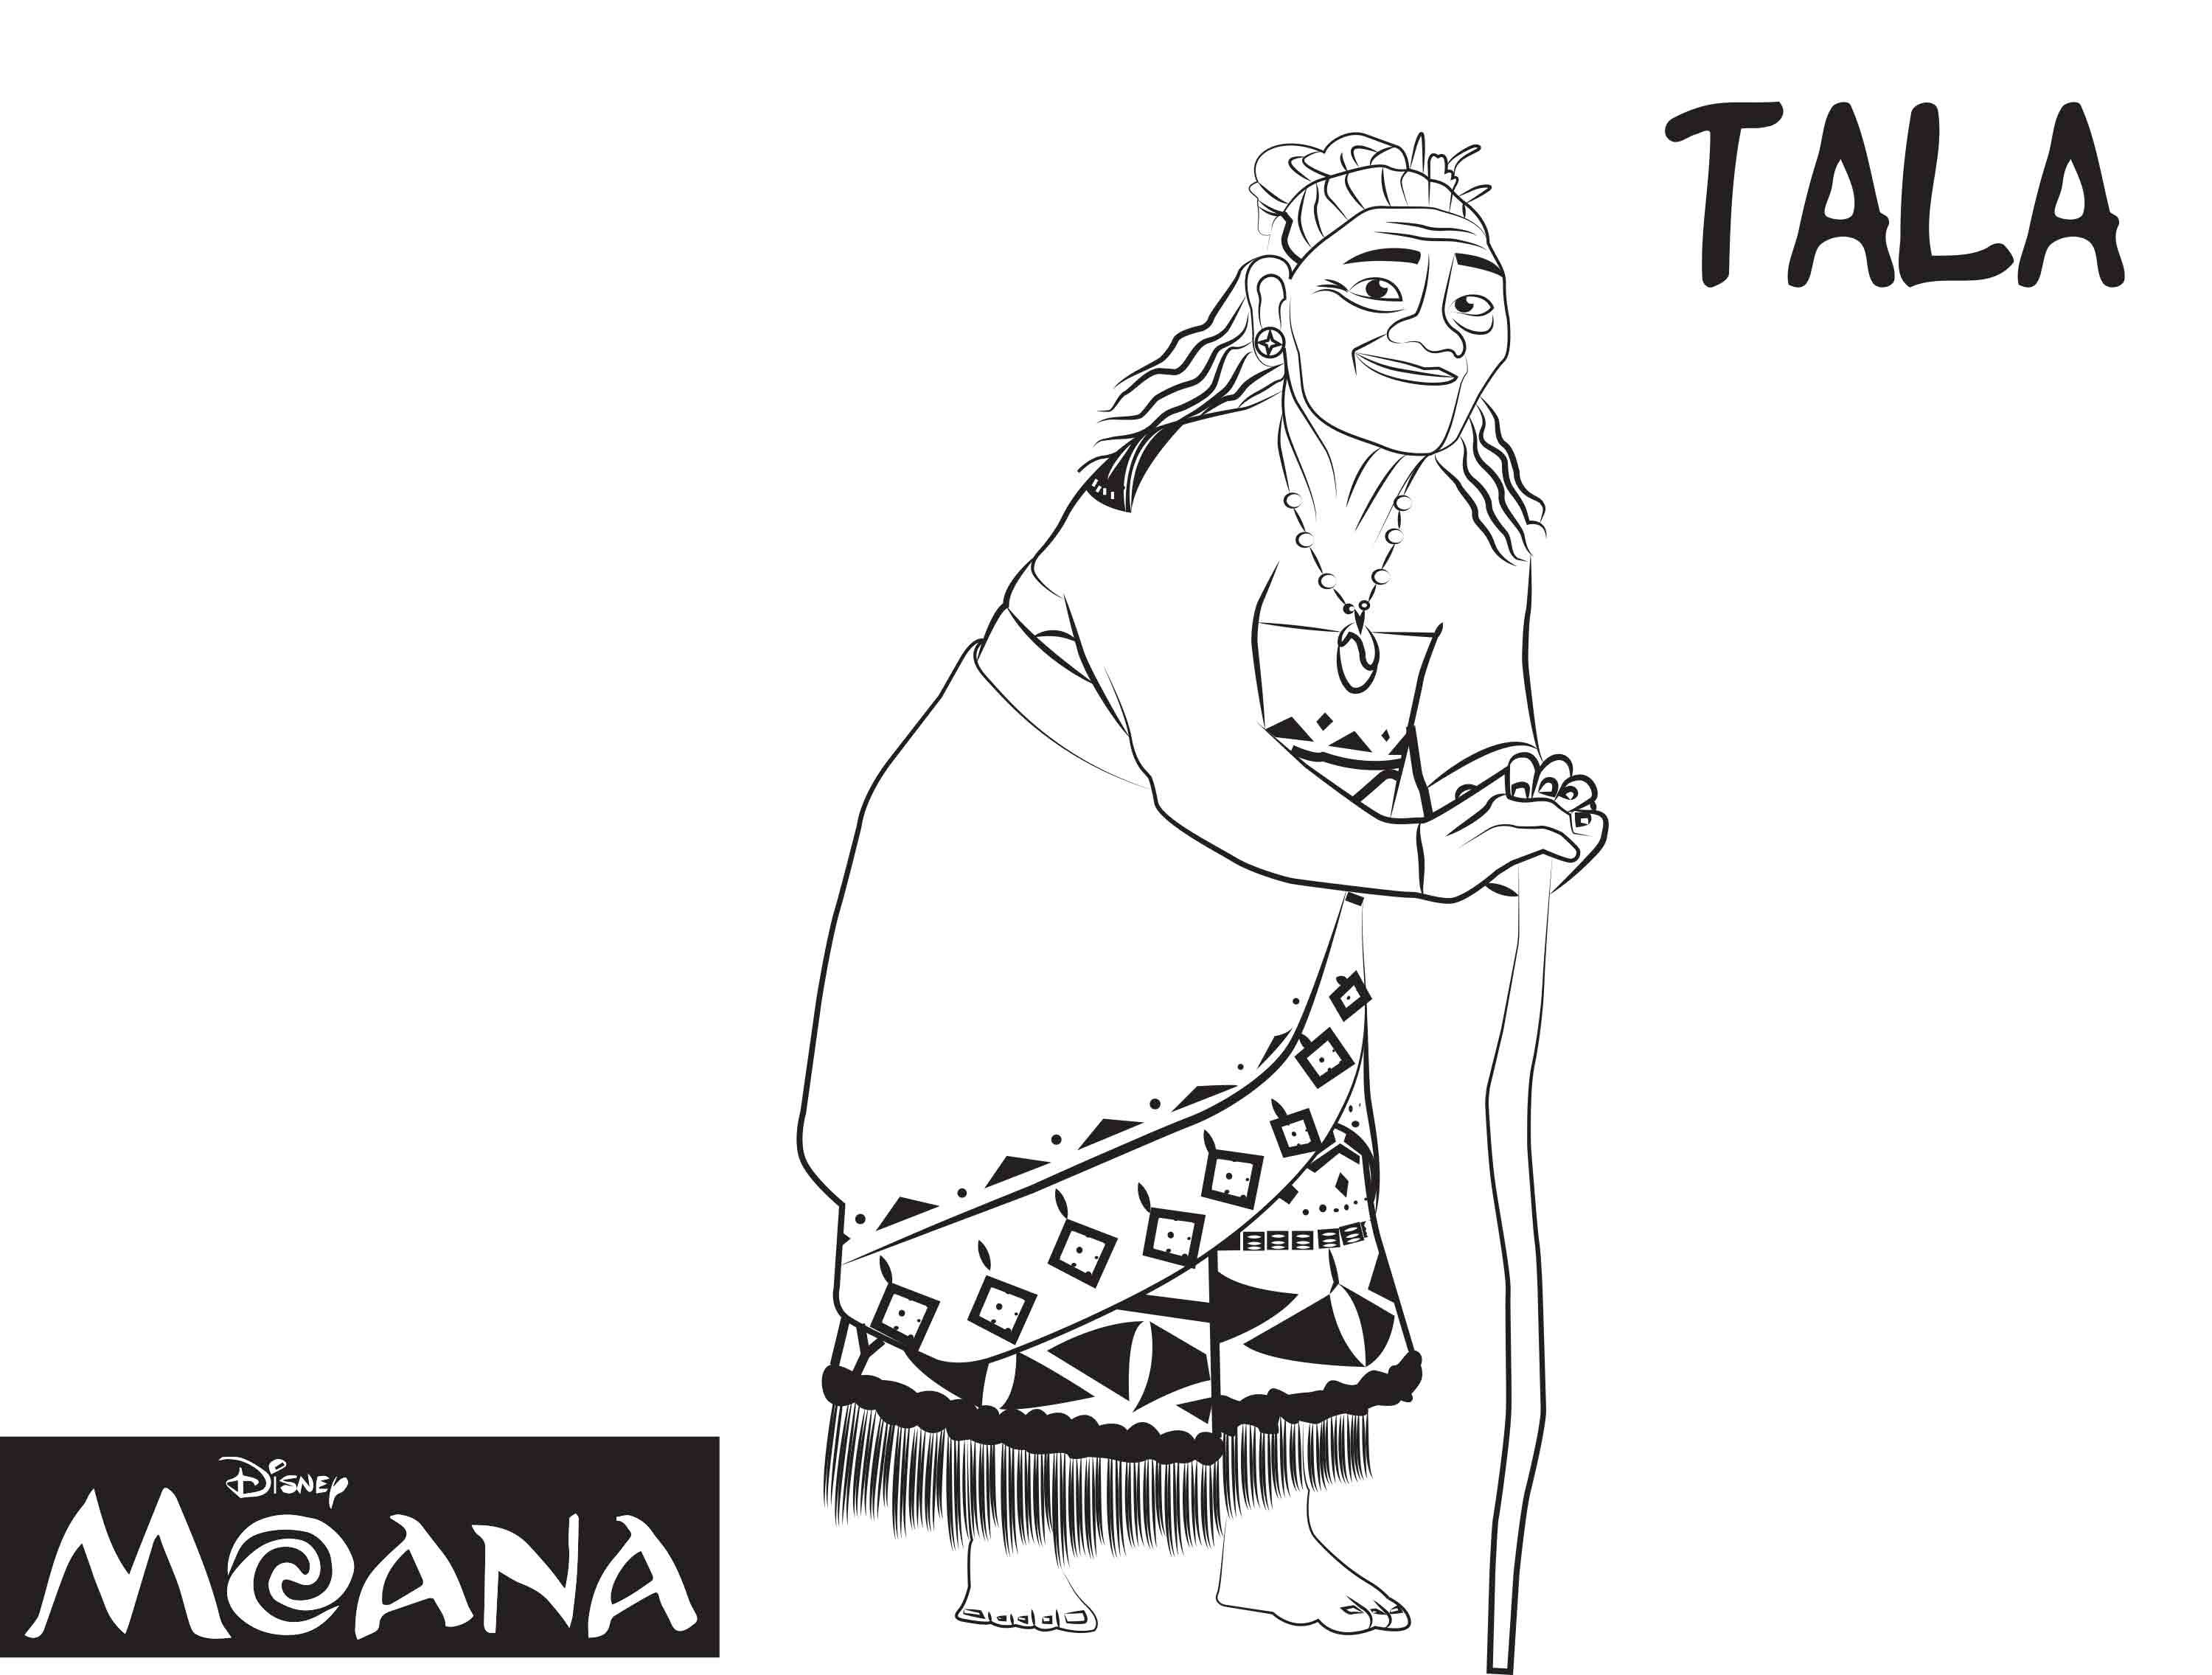 Coloring pages disney moana - Coloring Pages Disney Moana 38